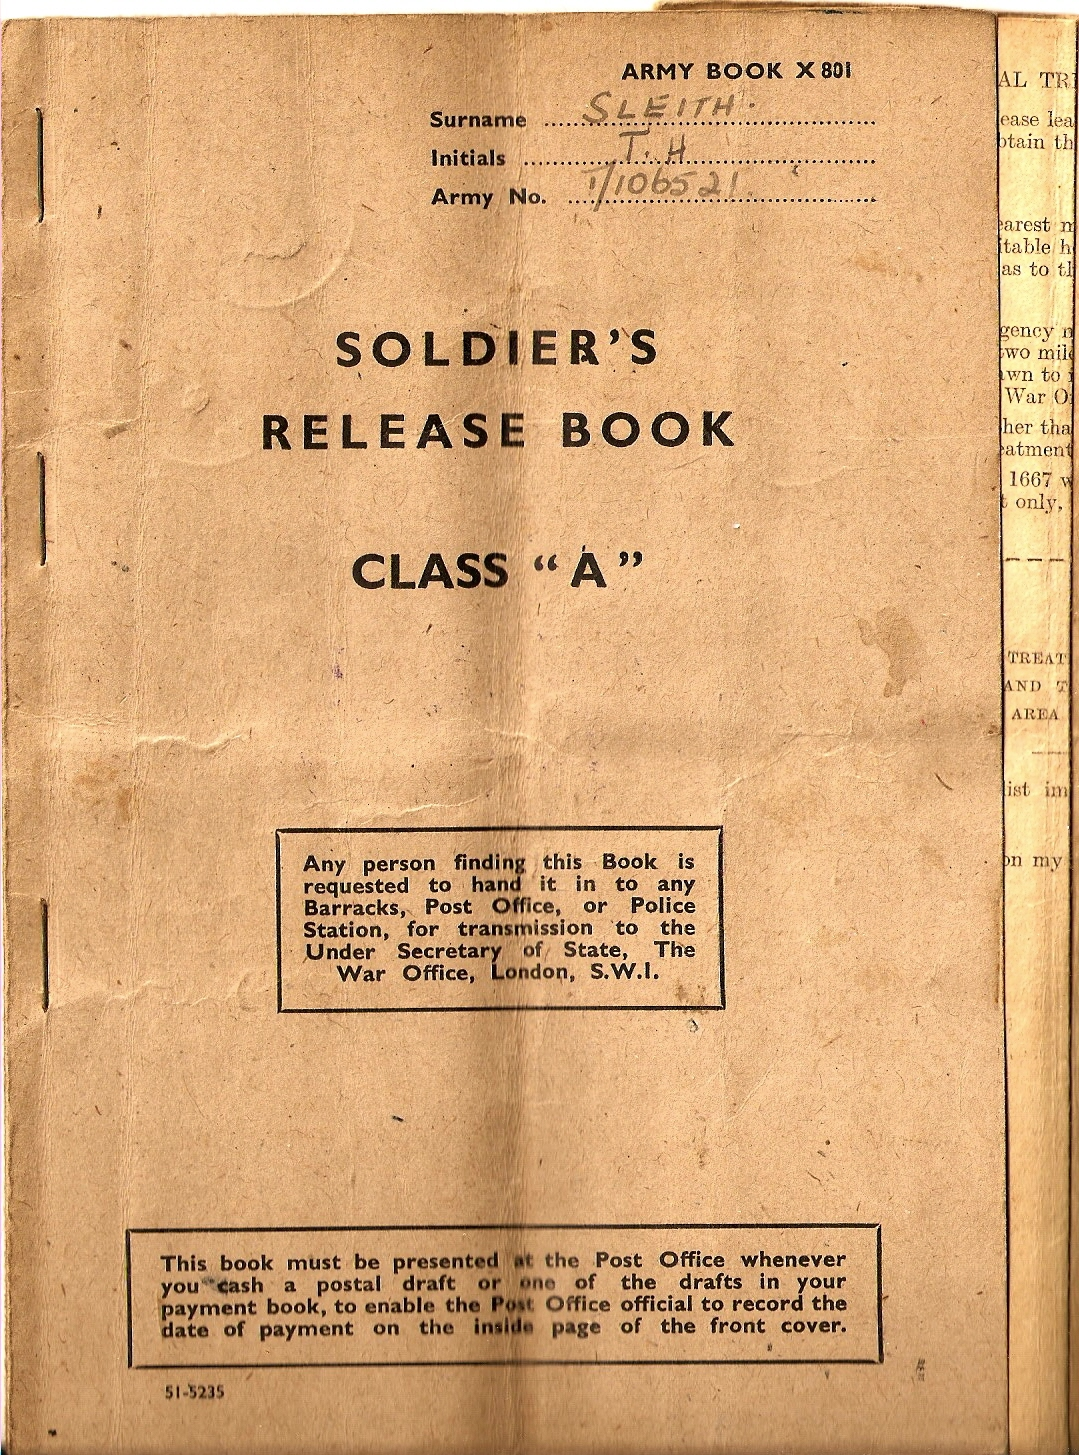 Class A Release Book for Tommy Sleith